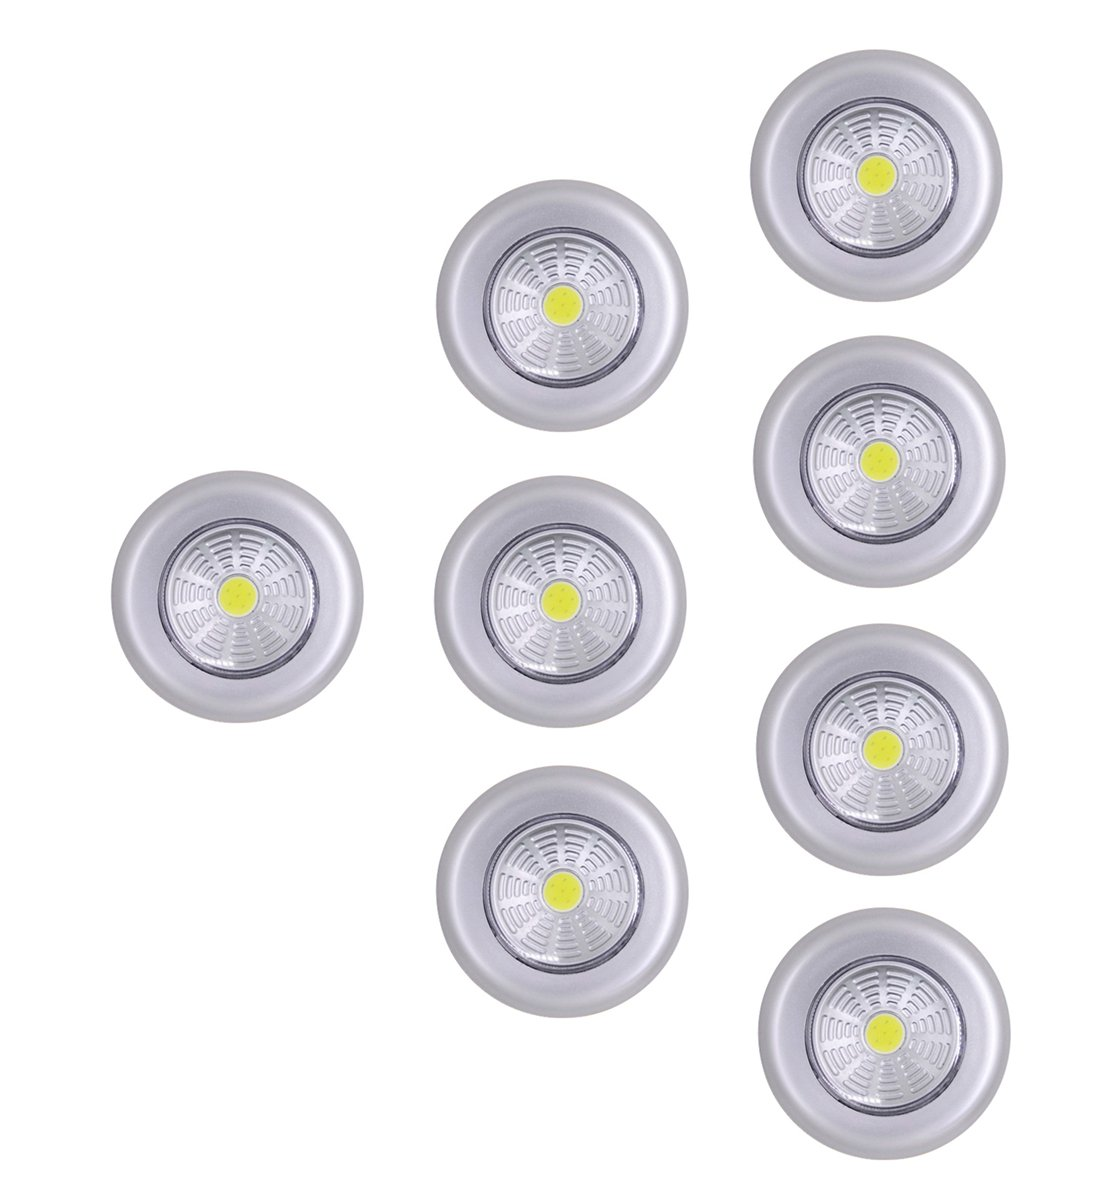 UOTOO Bright Tap Lights, Wireless Stick on Push Lights, Battery Powered Led Click Touch Light for Closet, Cabinet, Trunk, White Light 8-Pack by UOTOO